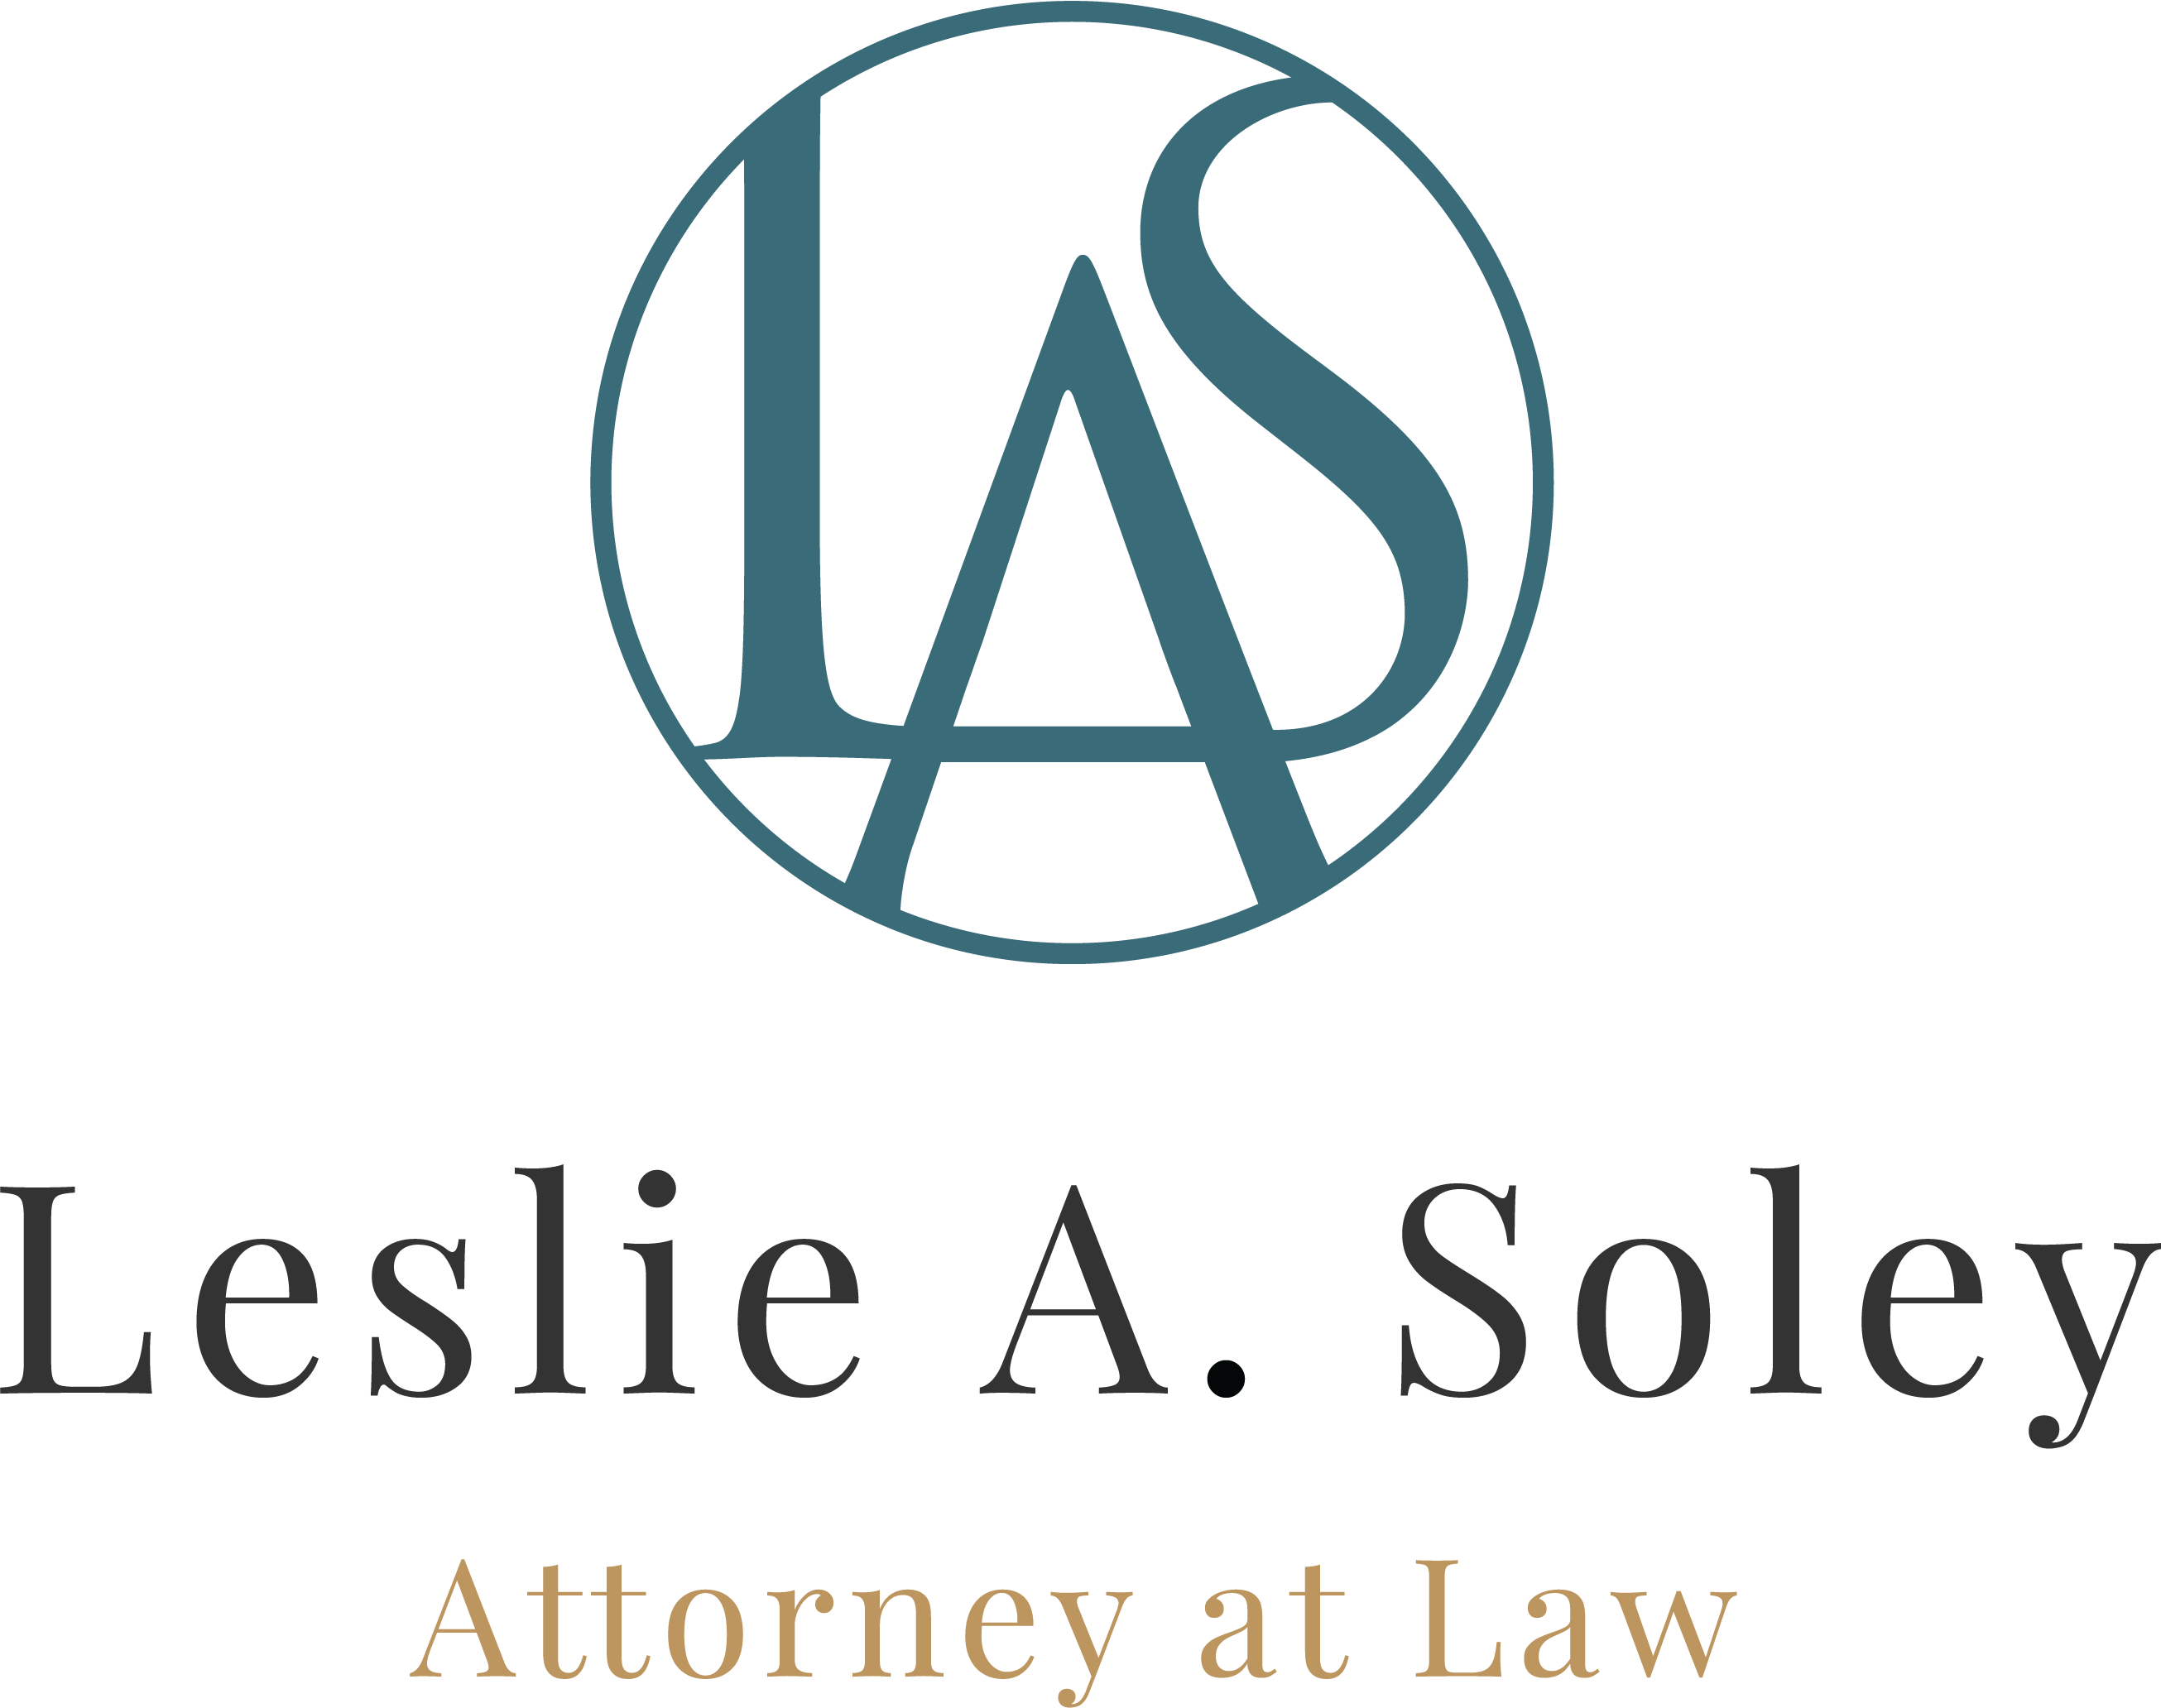 Leslie A. Soley, Attorney at Law